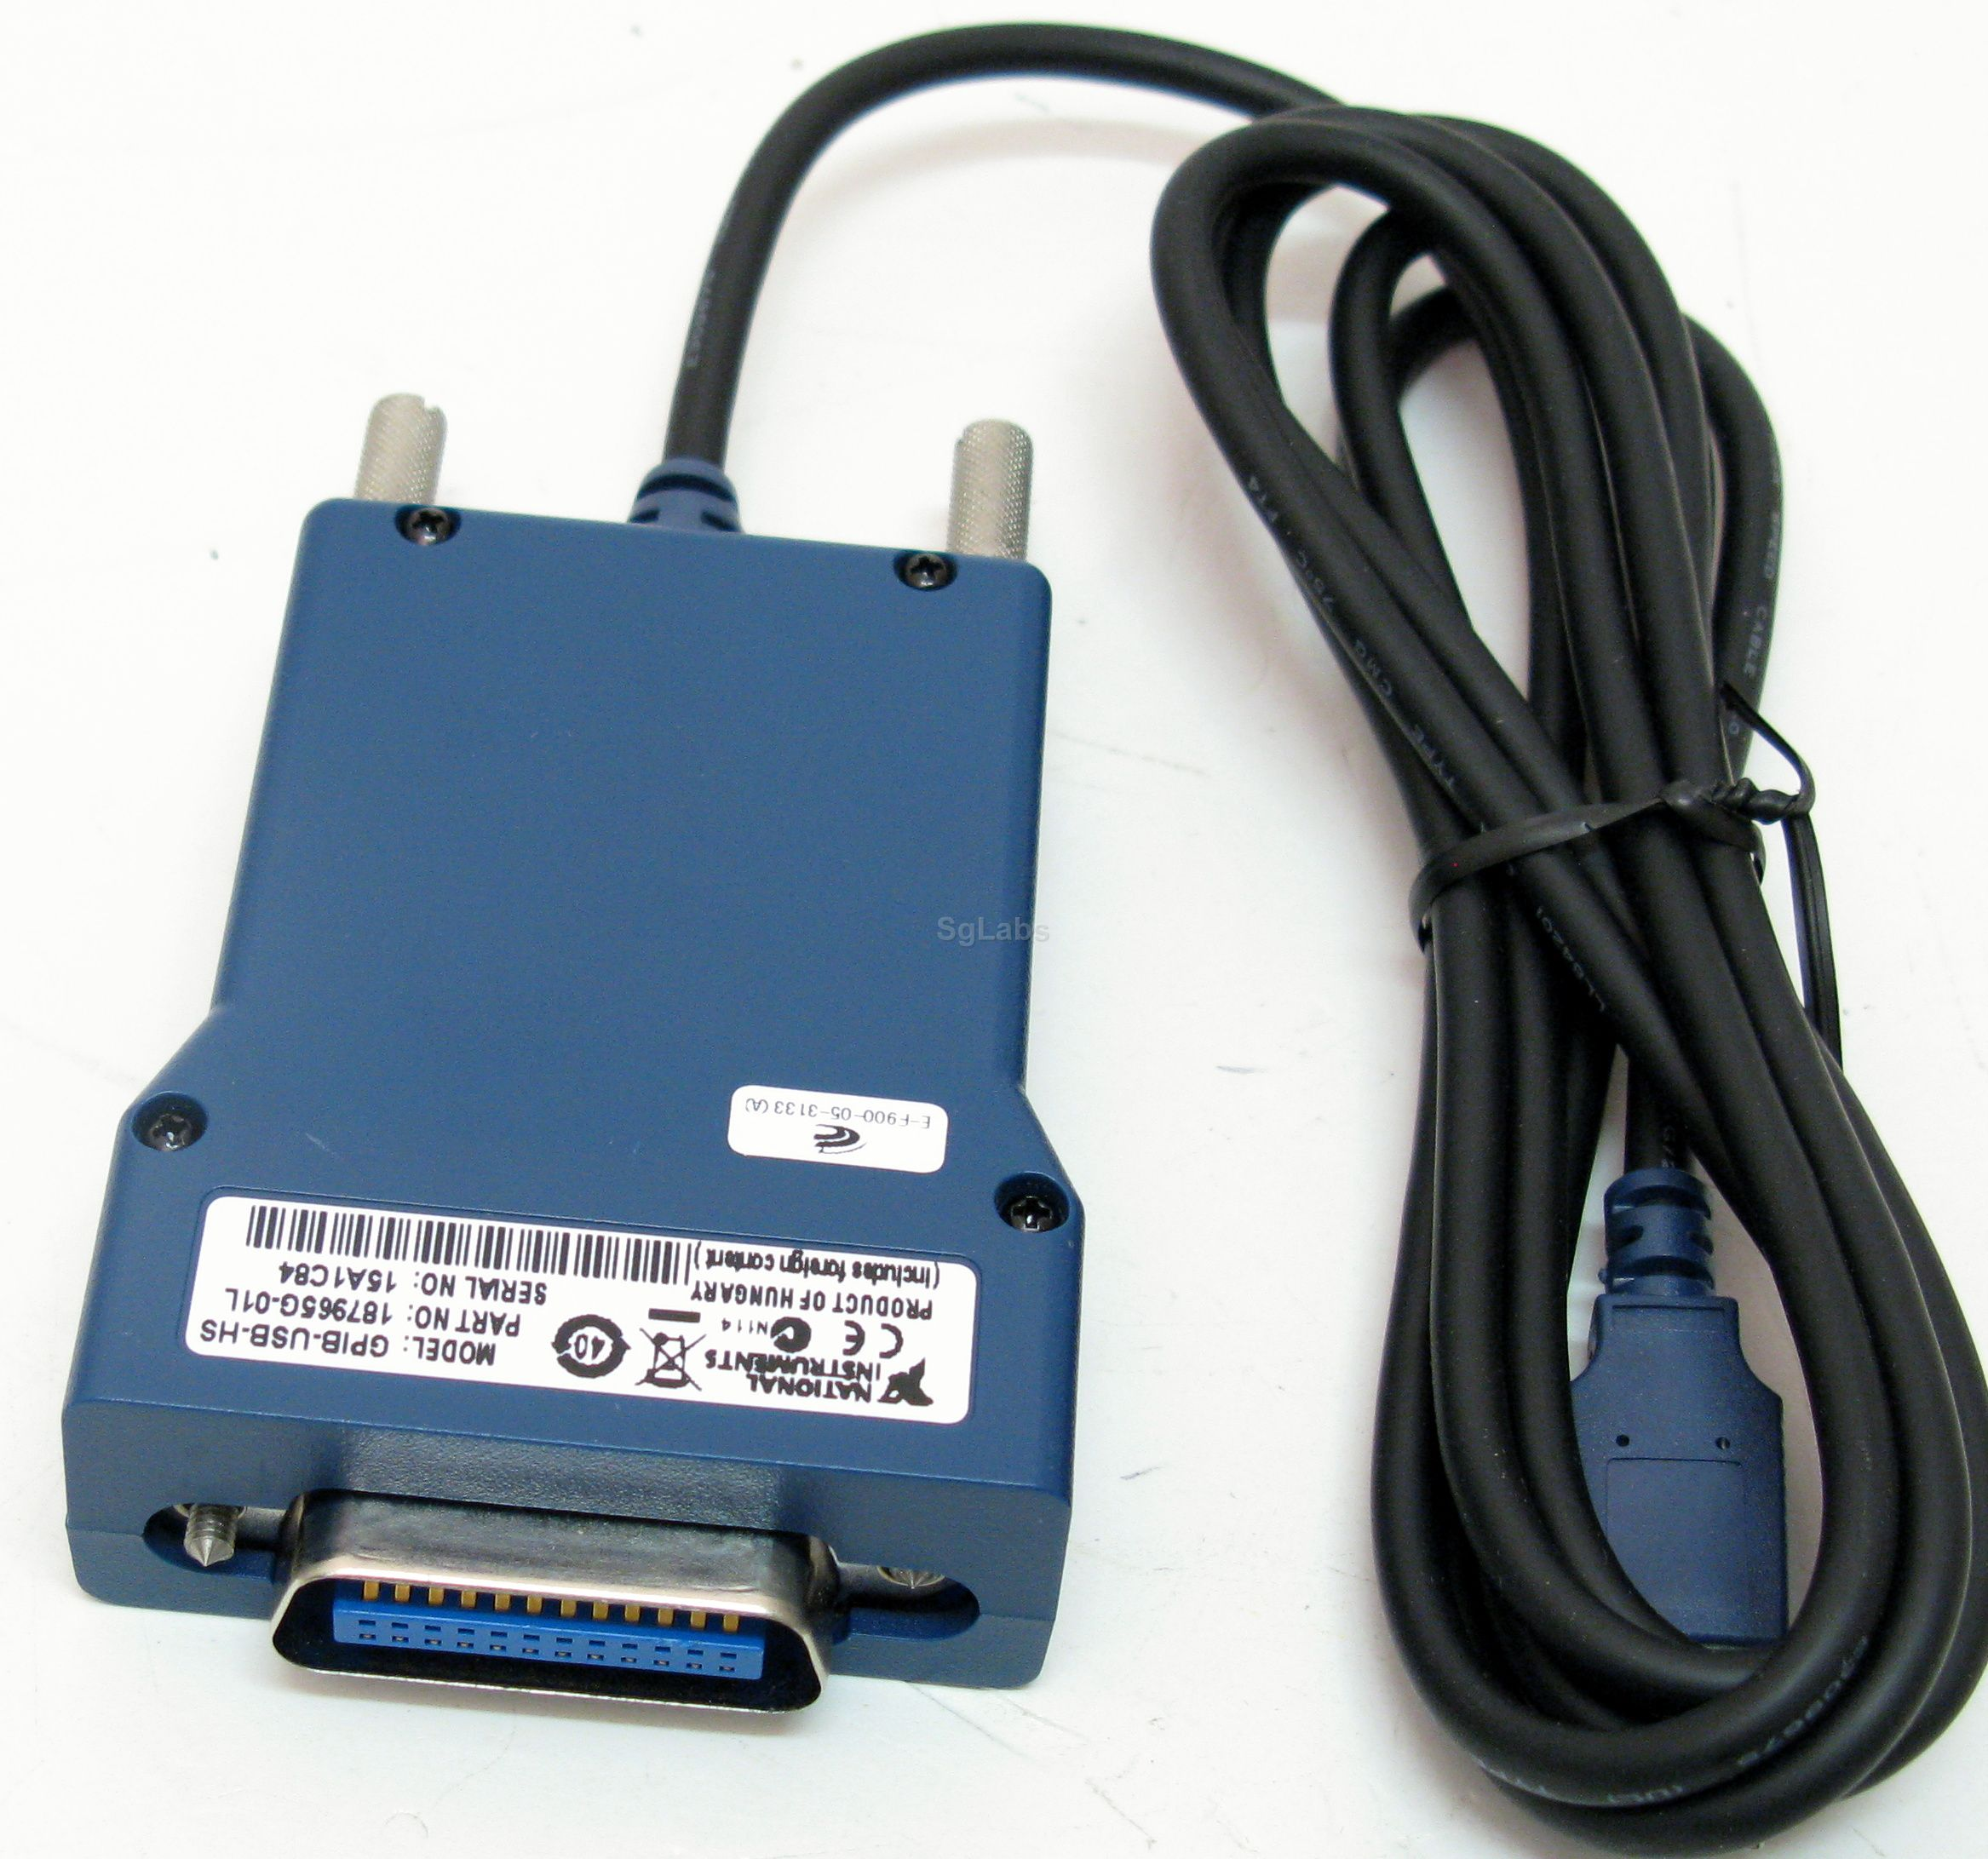 NI GPIB USB - B DRIVERS FOR WINDOWS 7